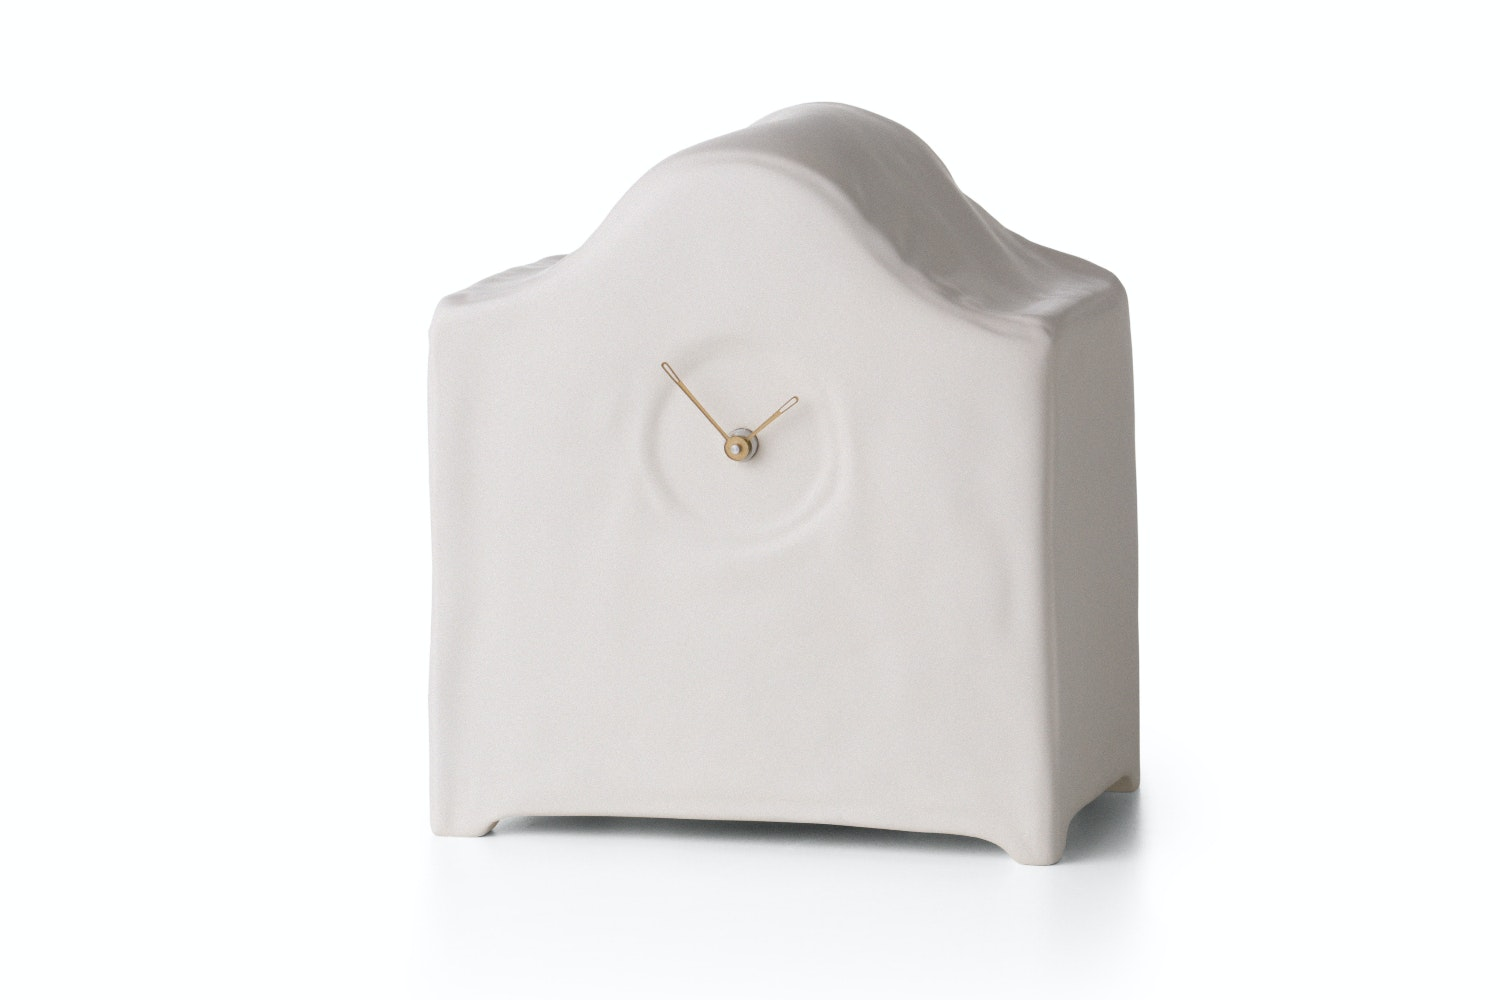 Soft Clock White by Kiki van Eijk for Moooi